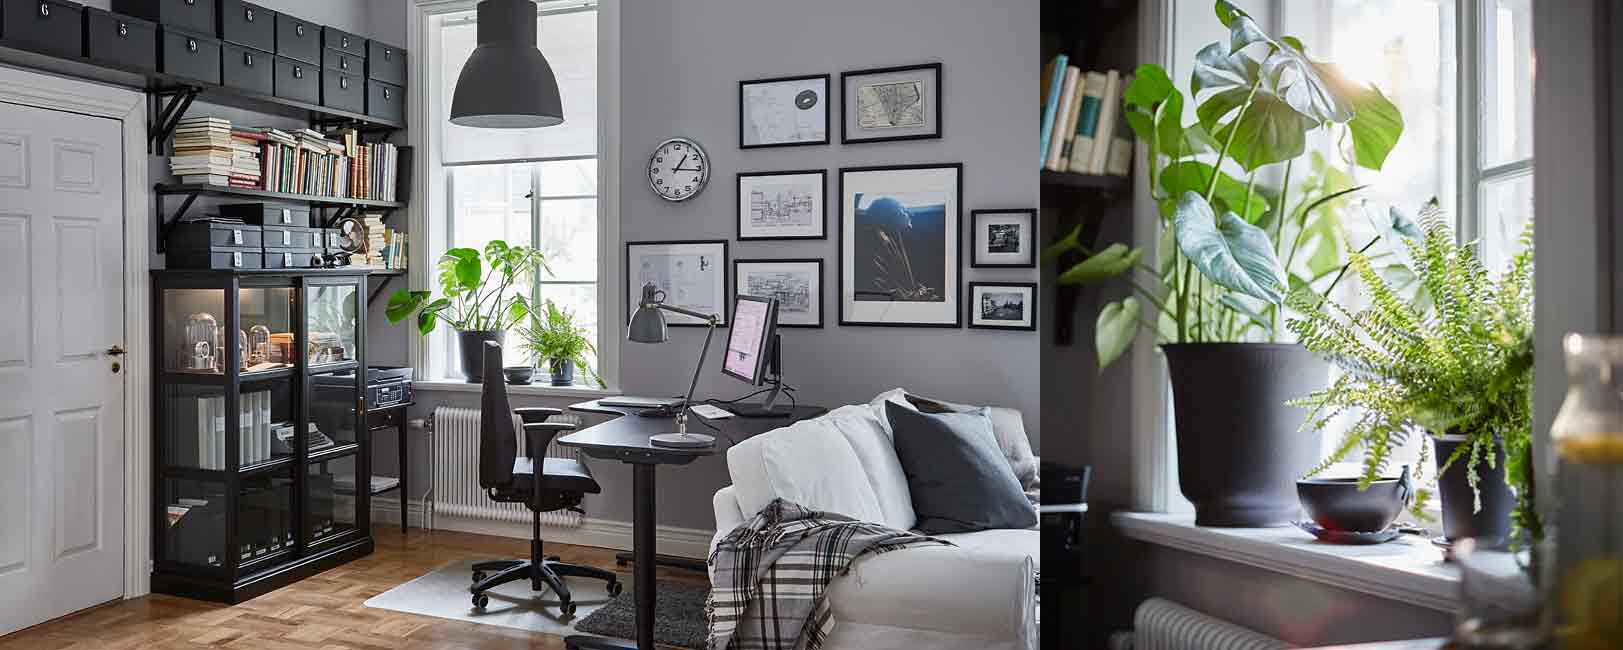 right-place-to-woright-place-to-work-home-office-ideasrk-home-office-ideas